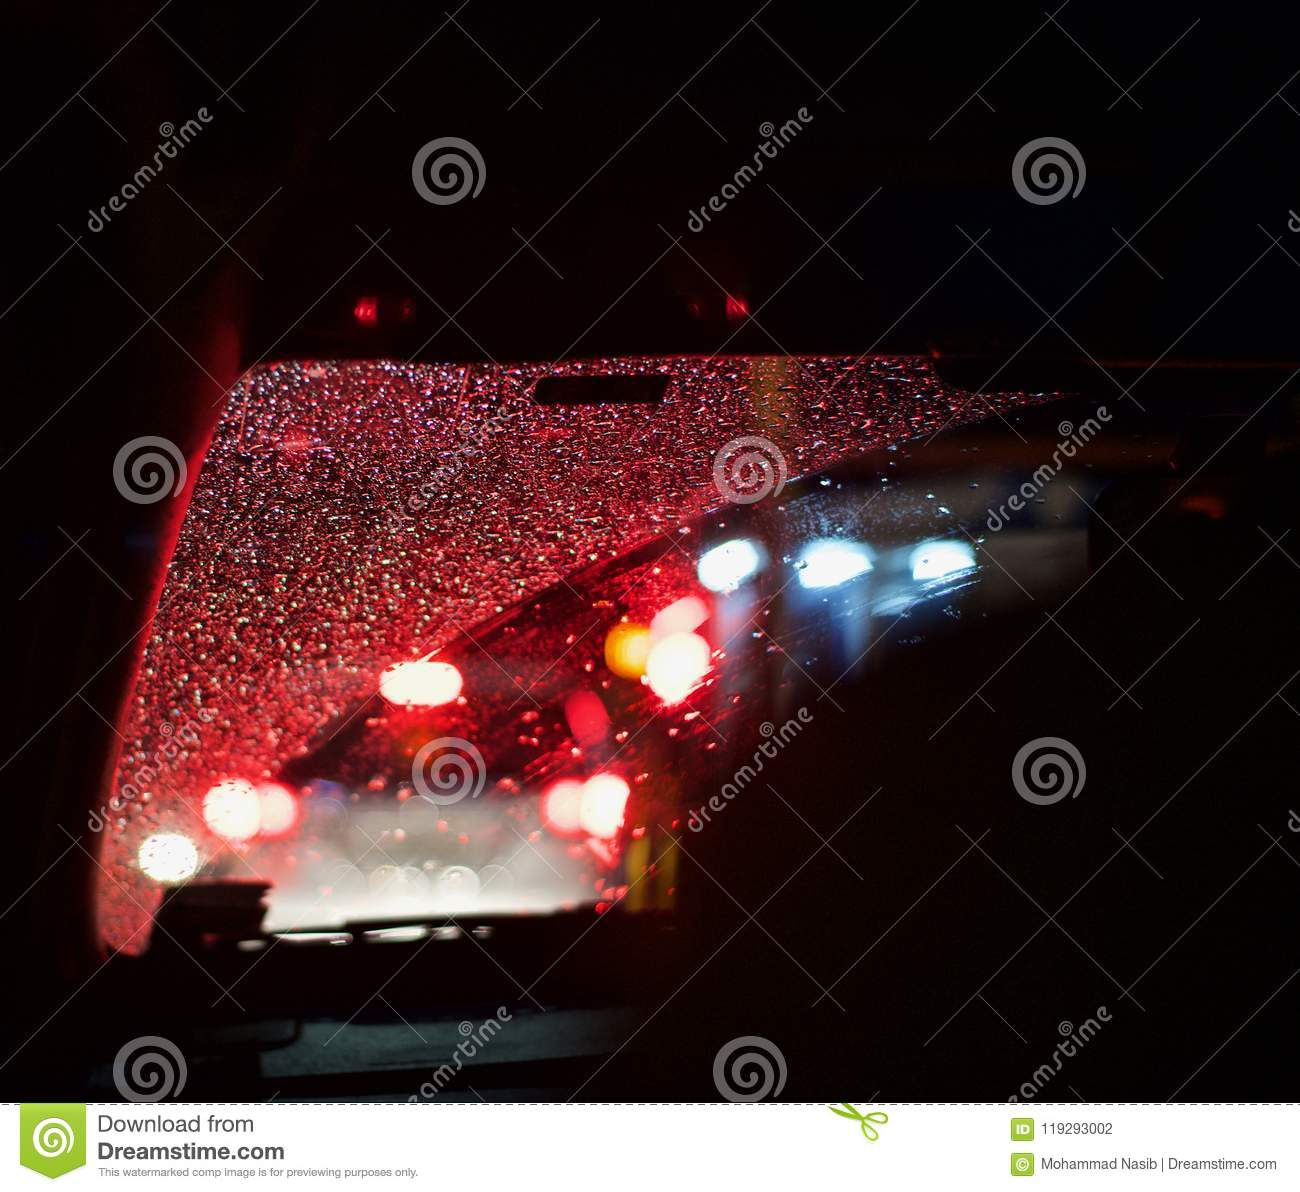 Download Rain Drops Of Water Fallen On A Vehicle Front Glass Unique Photo Stock Photo - Image of water, cars: 119293002